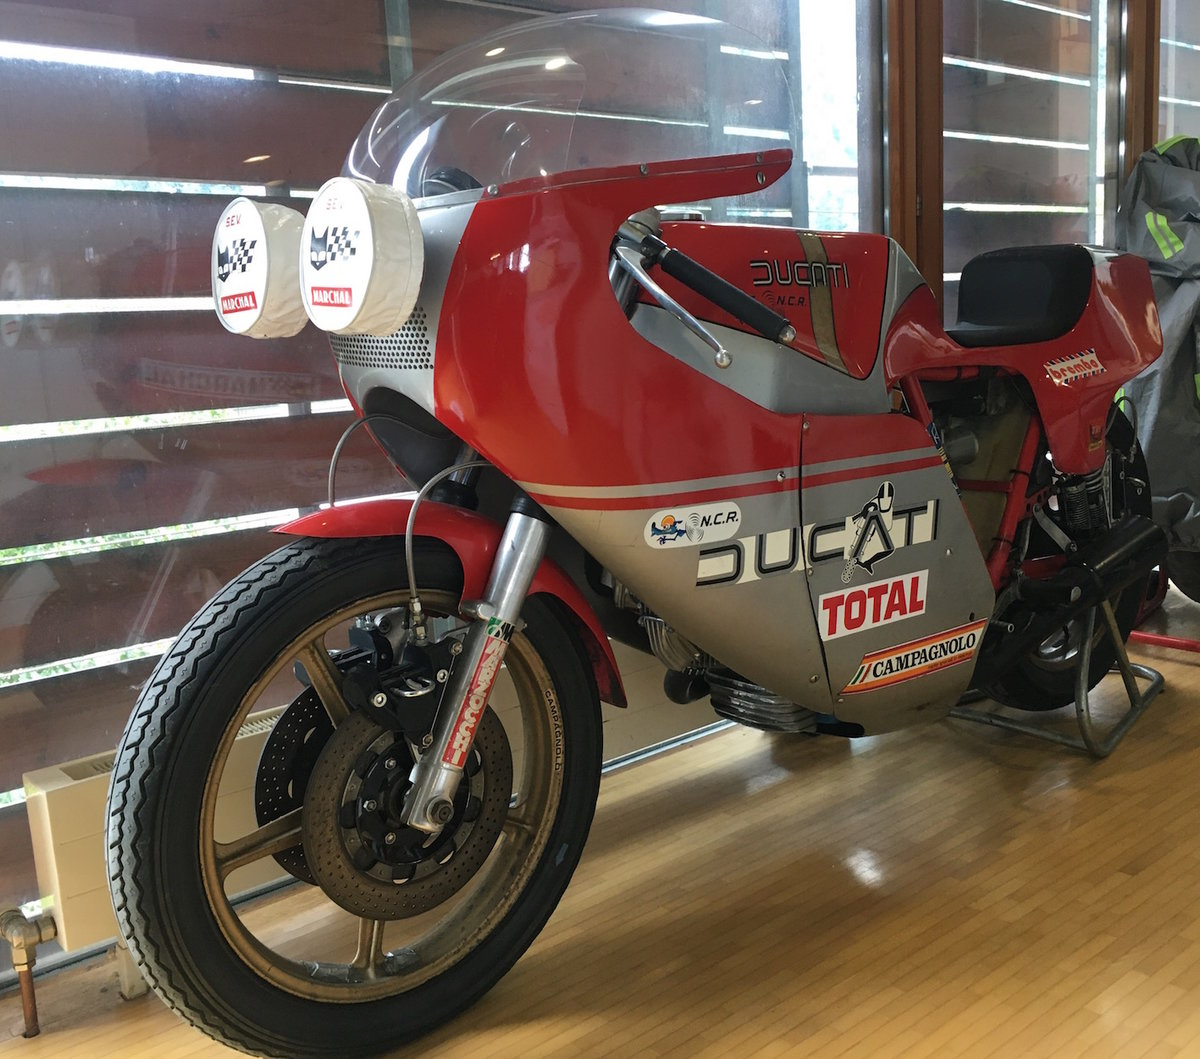 1977 Original Ducati 900 NCR Endurance racer For Sale (picture 2 of 6)